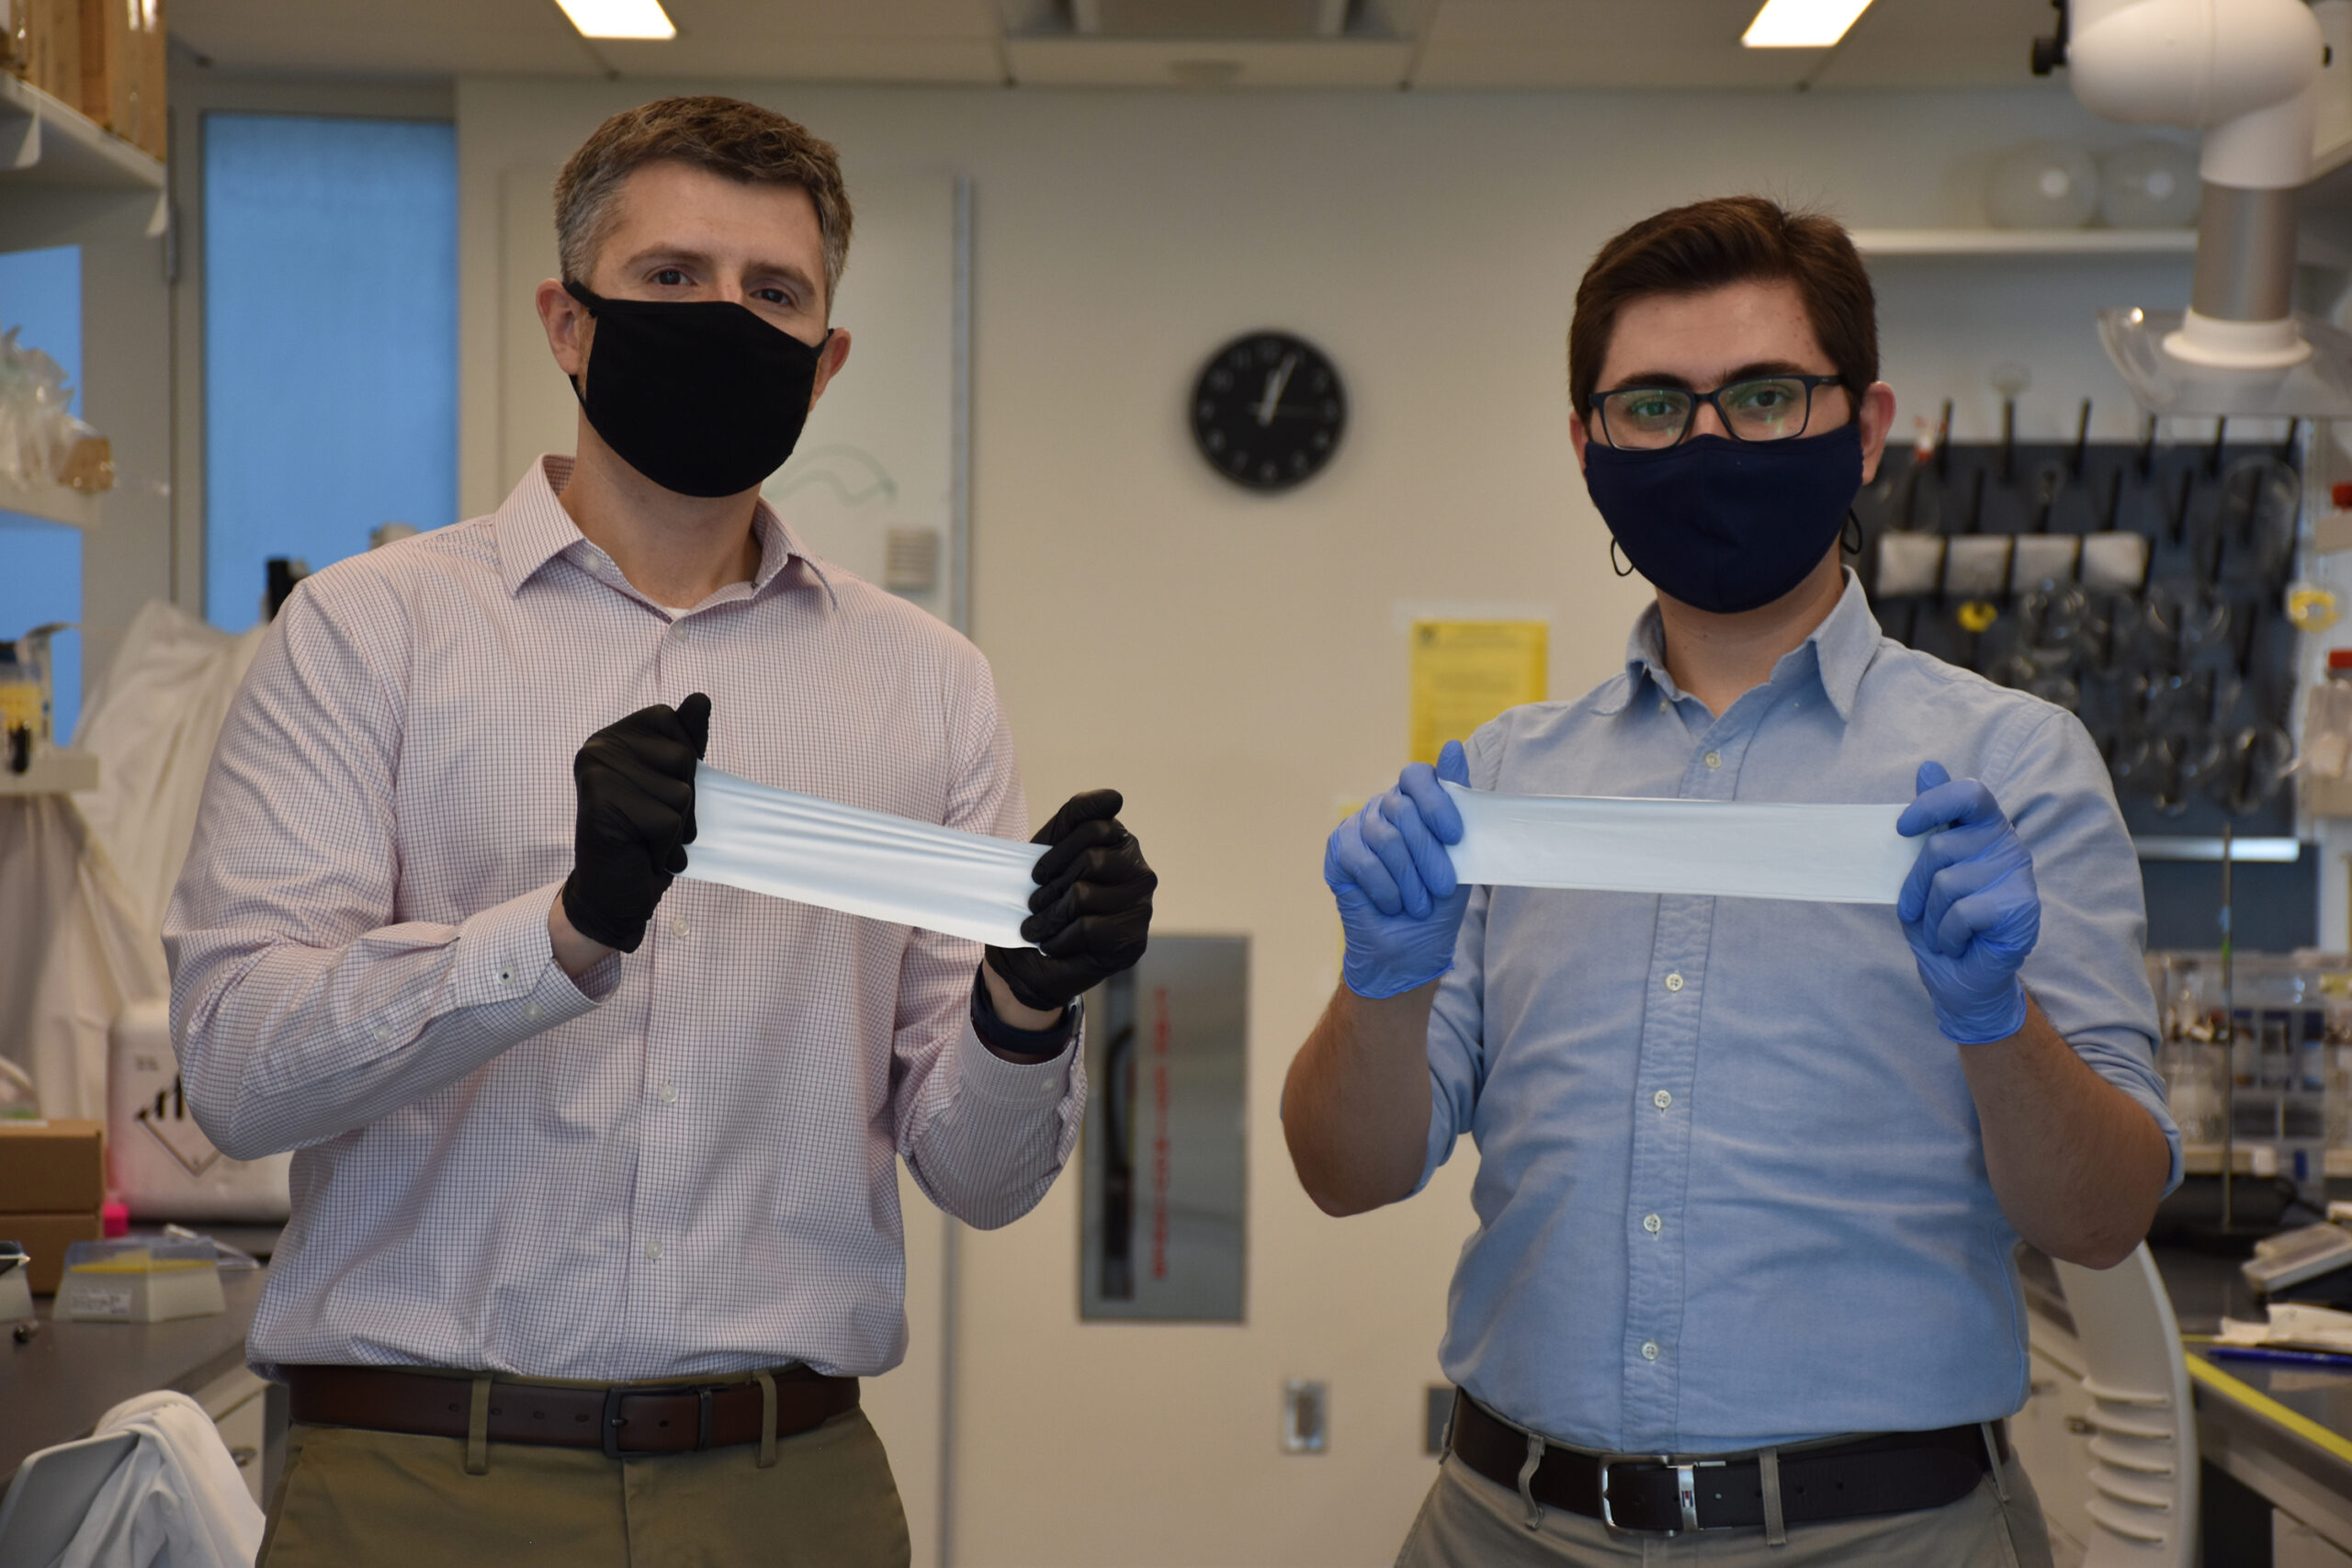 Daniel Roxbury and Mohammad Moein Safaee hold microfibrous materials